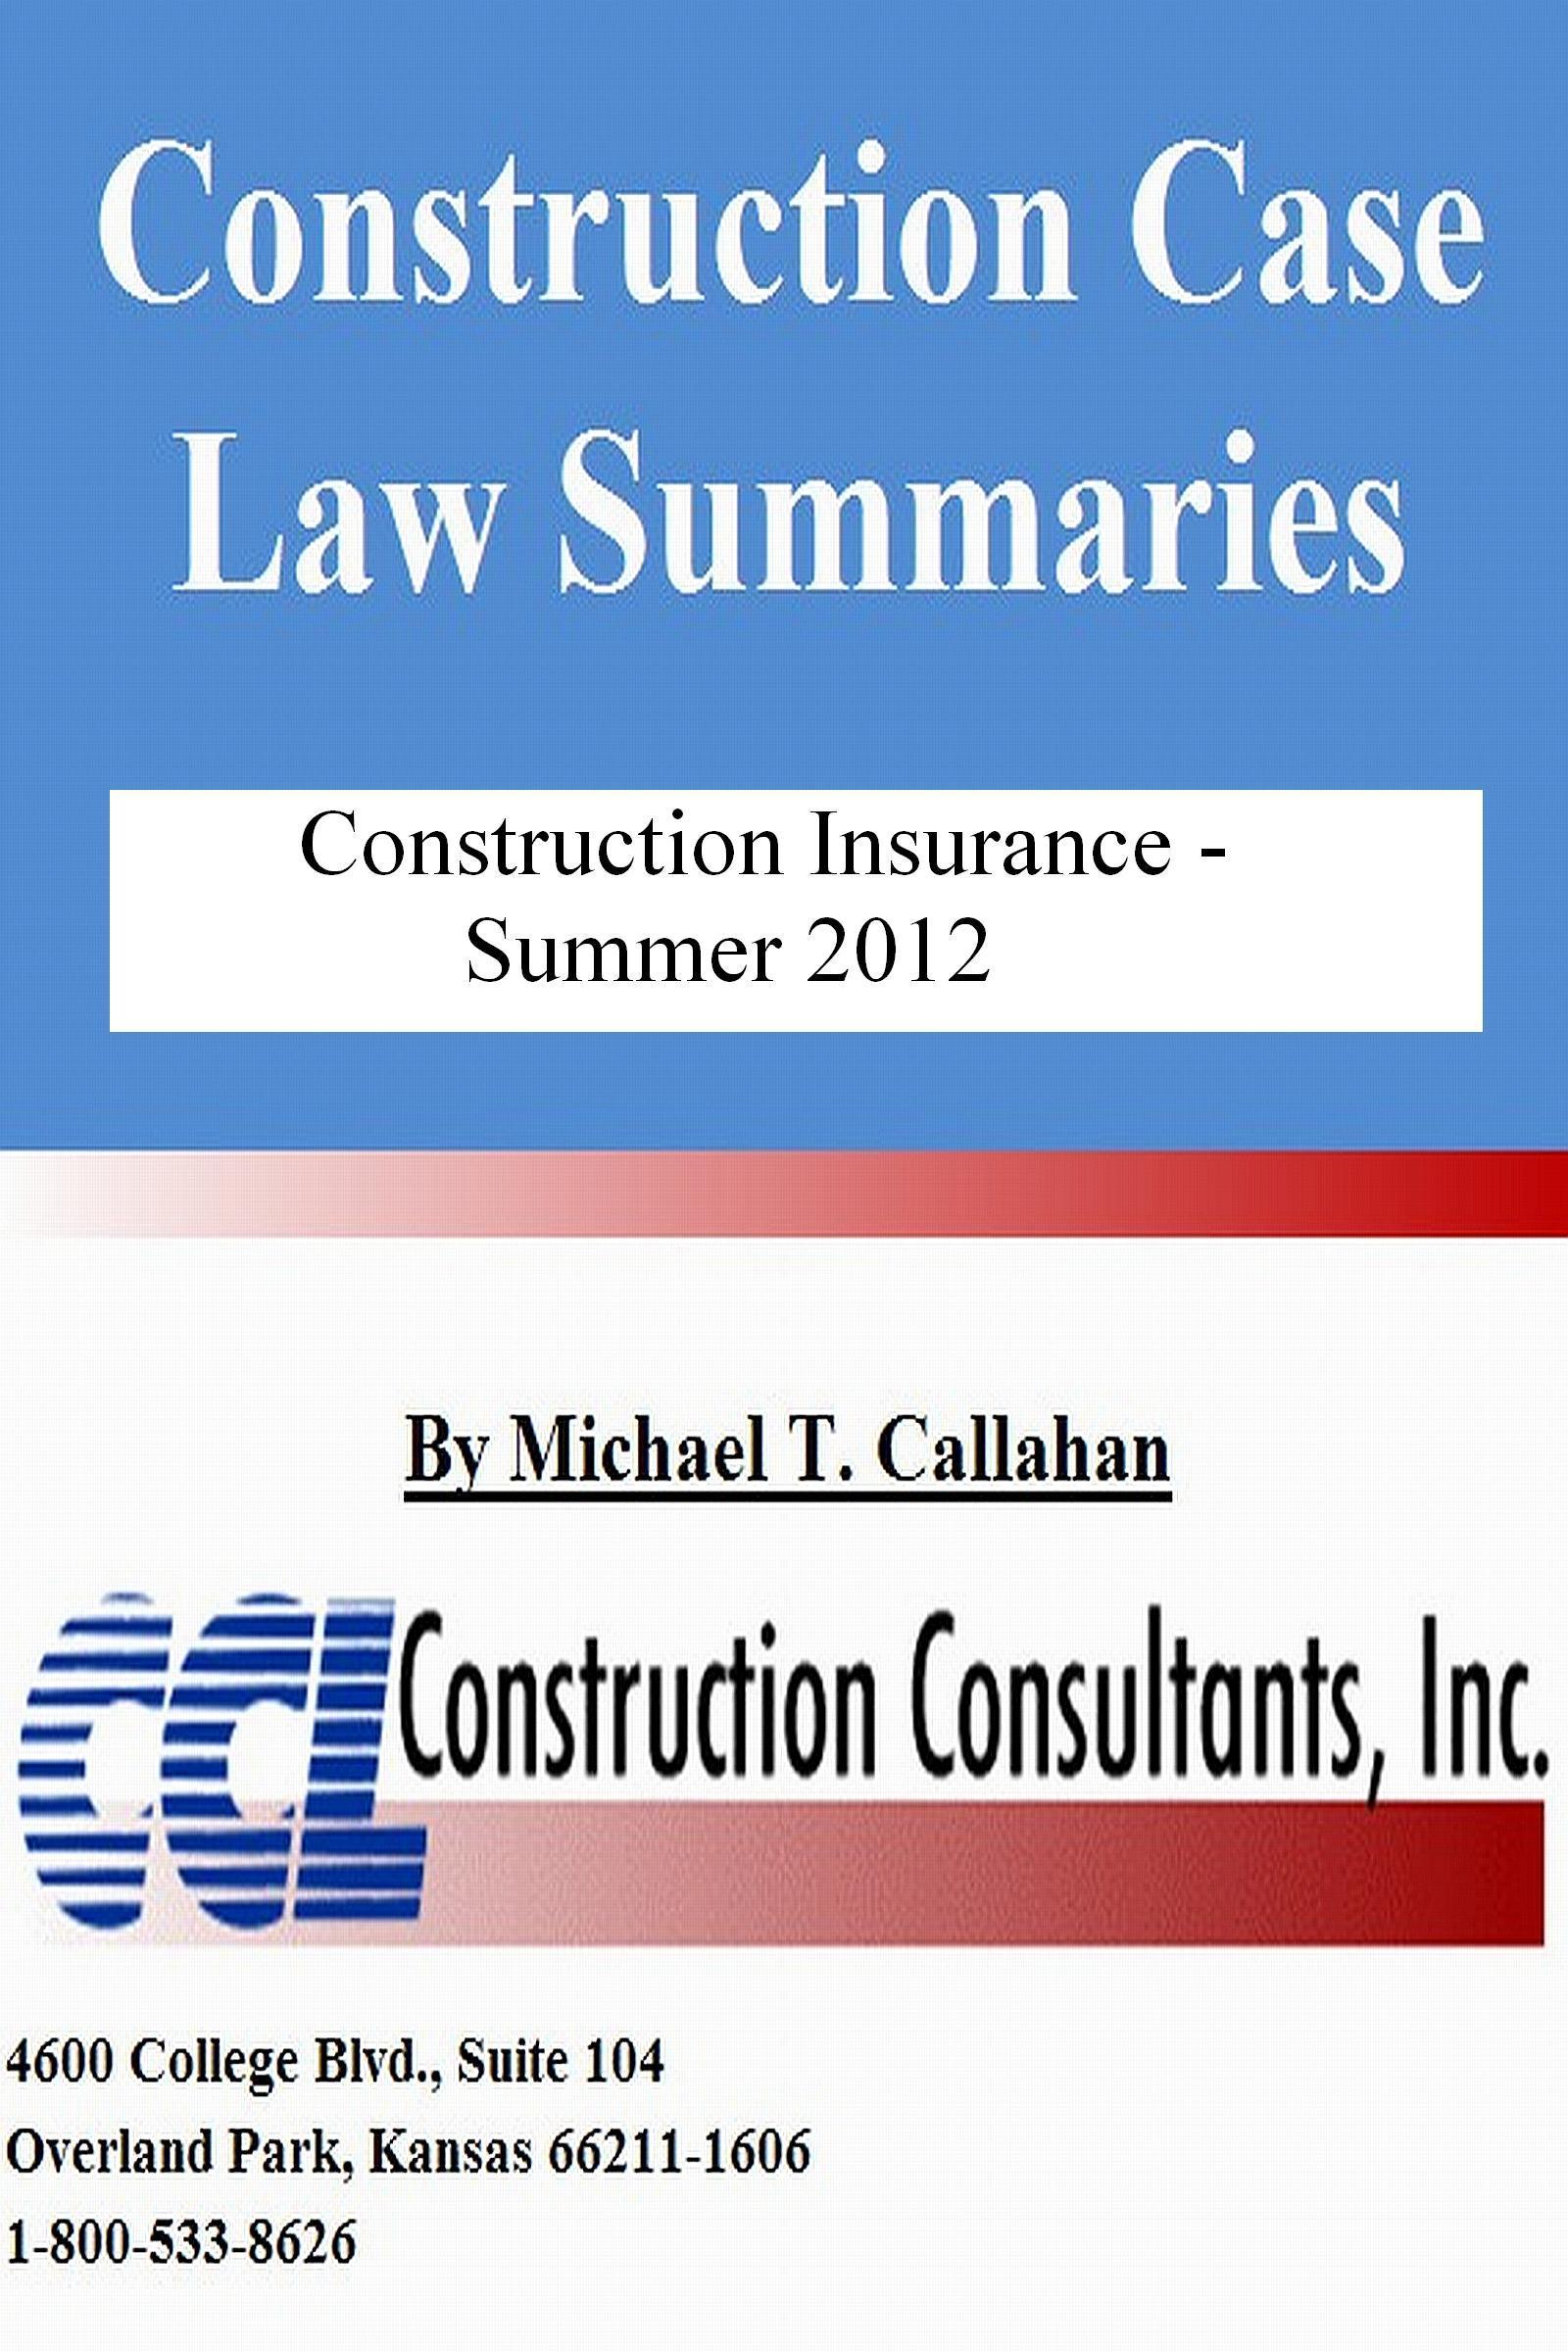 Construction Case Law Summaries: Construction Insurance, Summer 2012